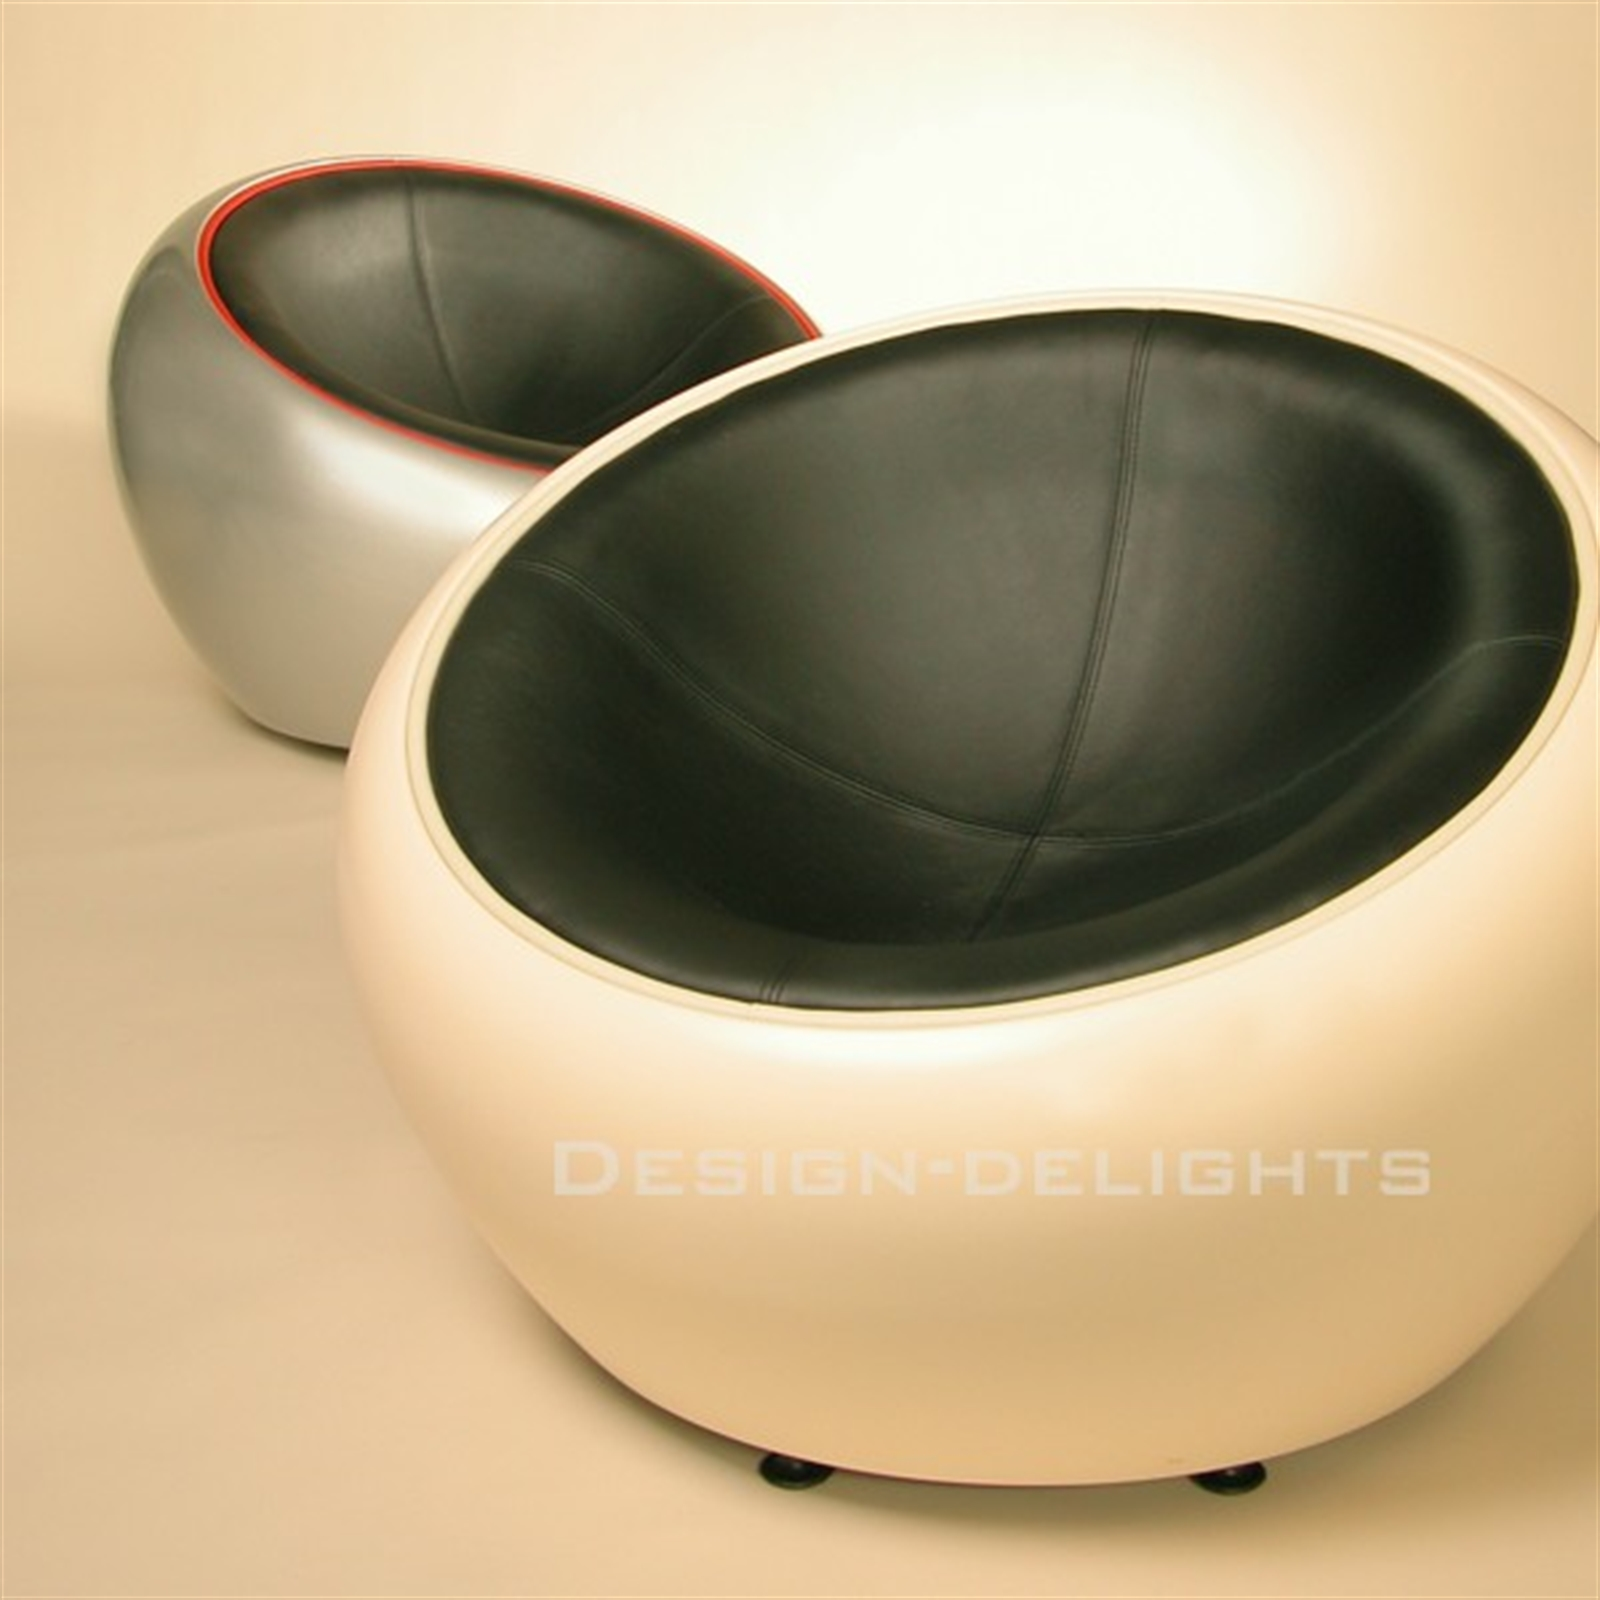 Egg Shell Chairs Design Lounge Ball Bowl Chair Space Retro Egg Stool C12